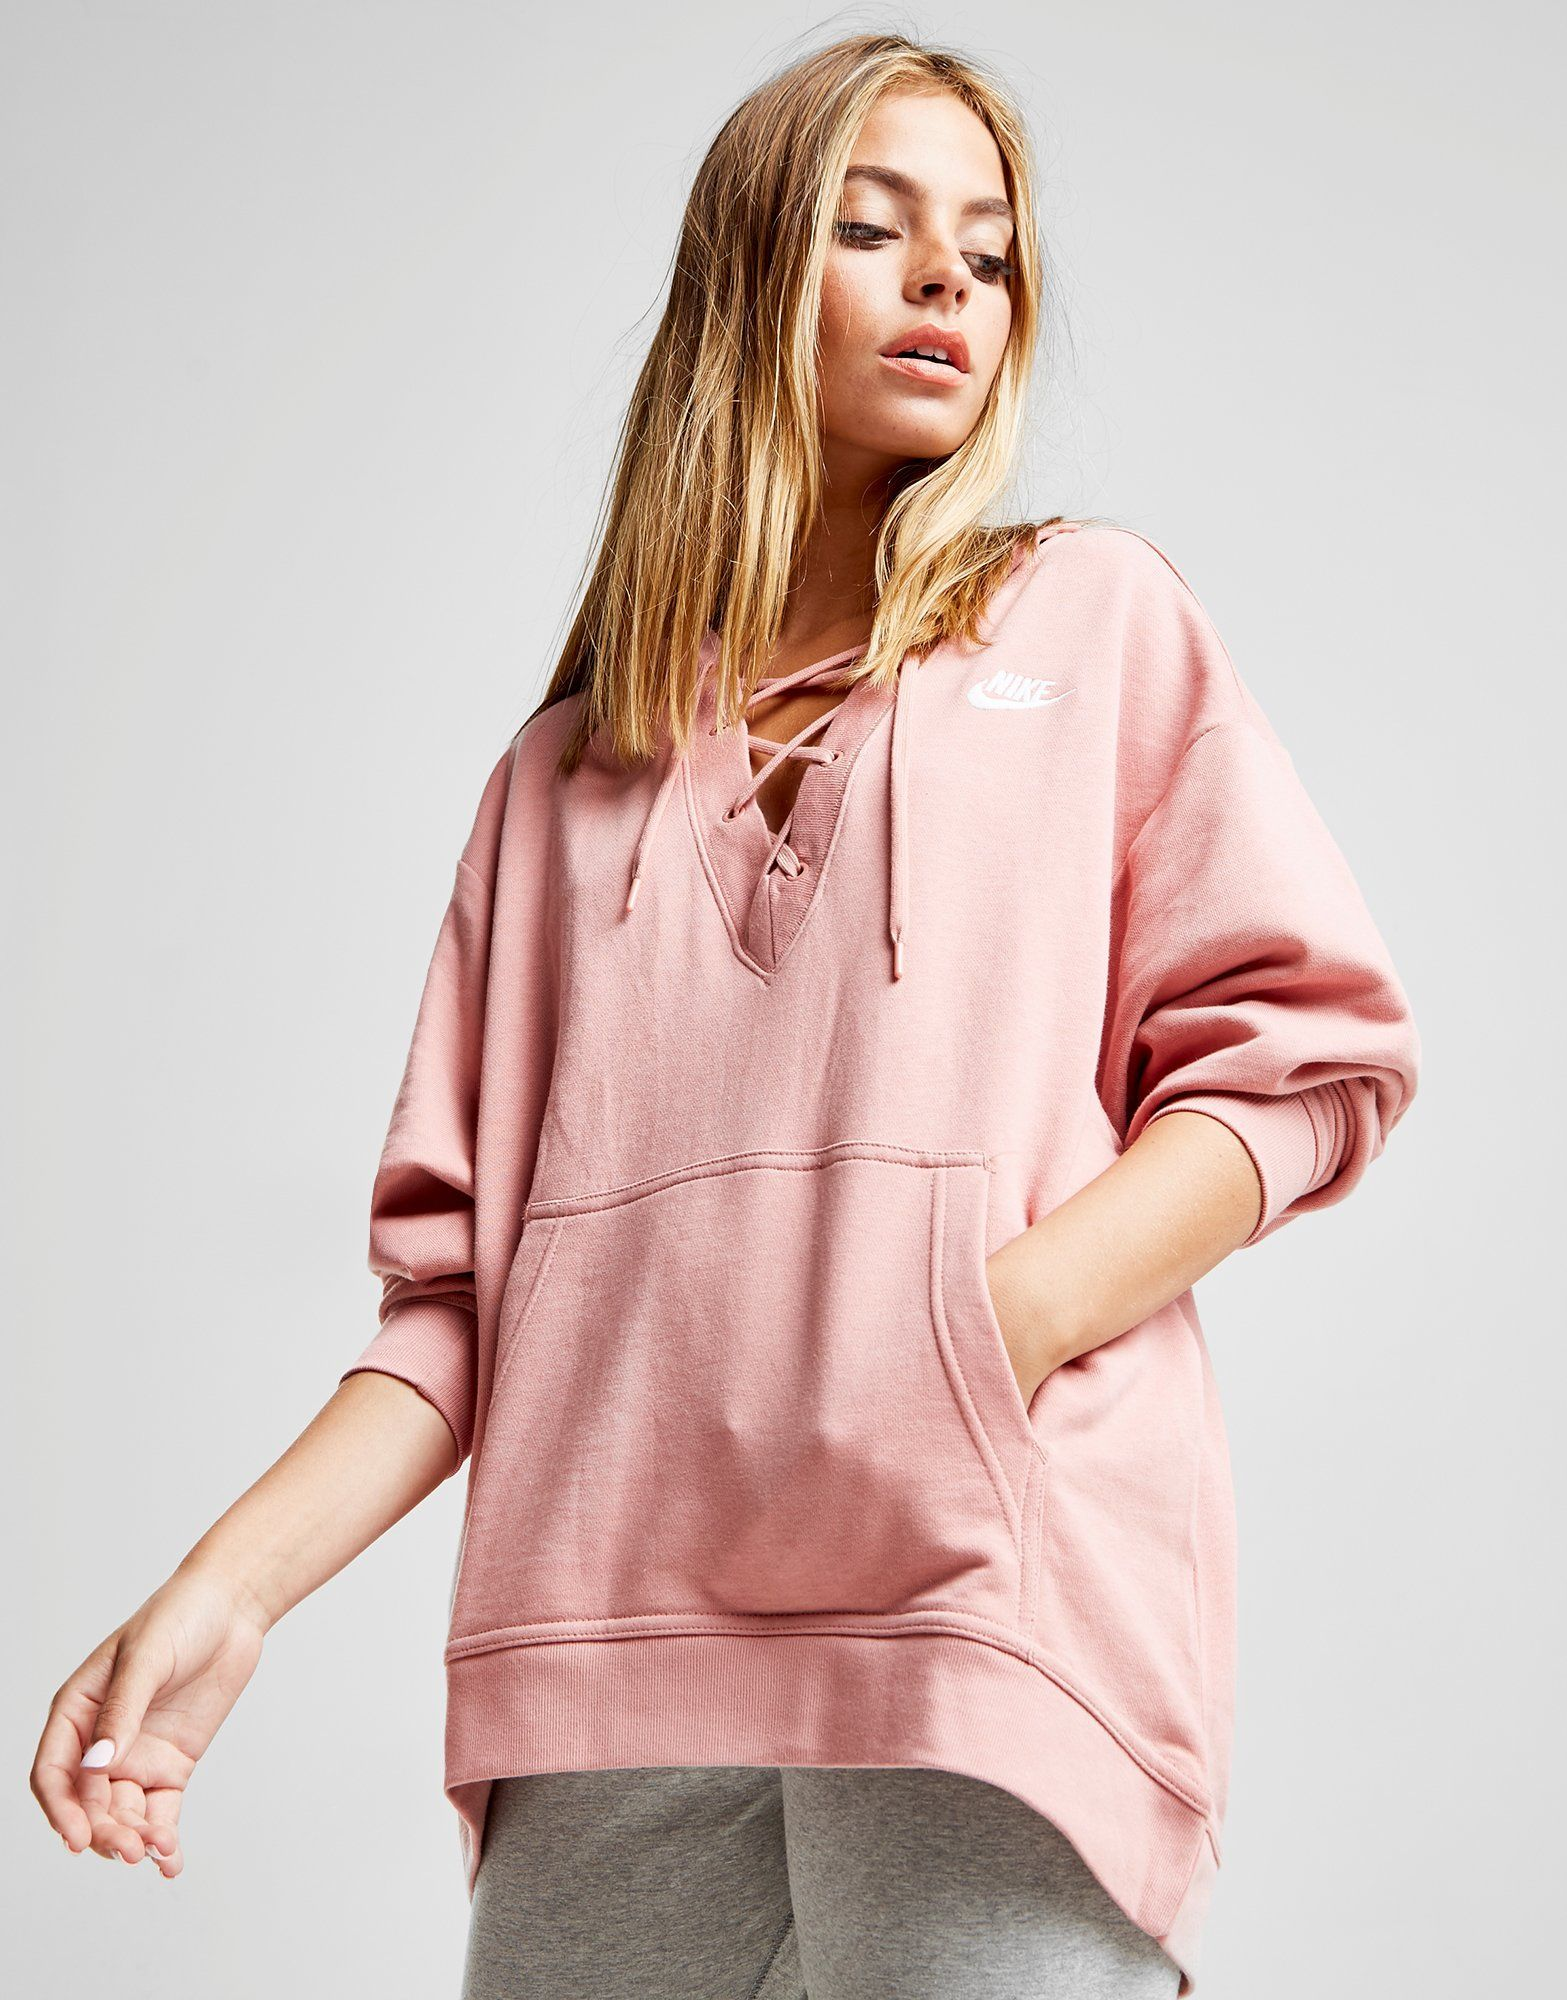 51634eed59 Nike Lace Up Hoodie - Shop online for Nike Lace Up Hoodie with JD Sports,  the UK's leading sports fashion retailer.